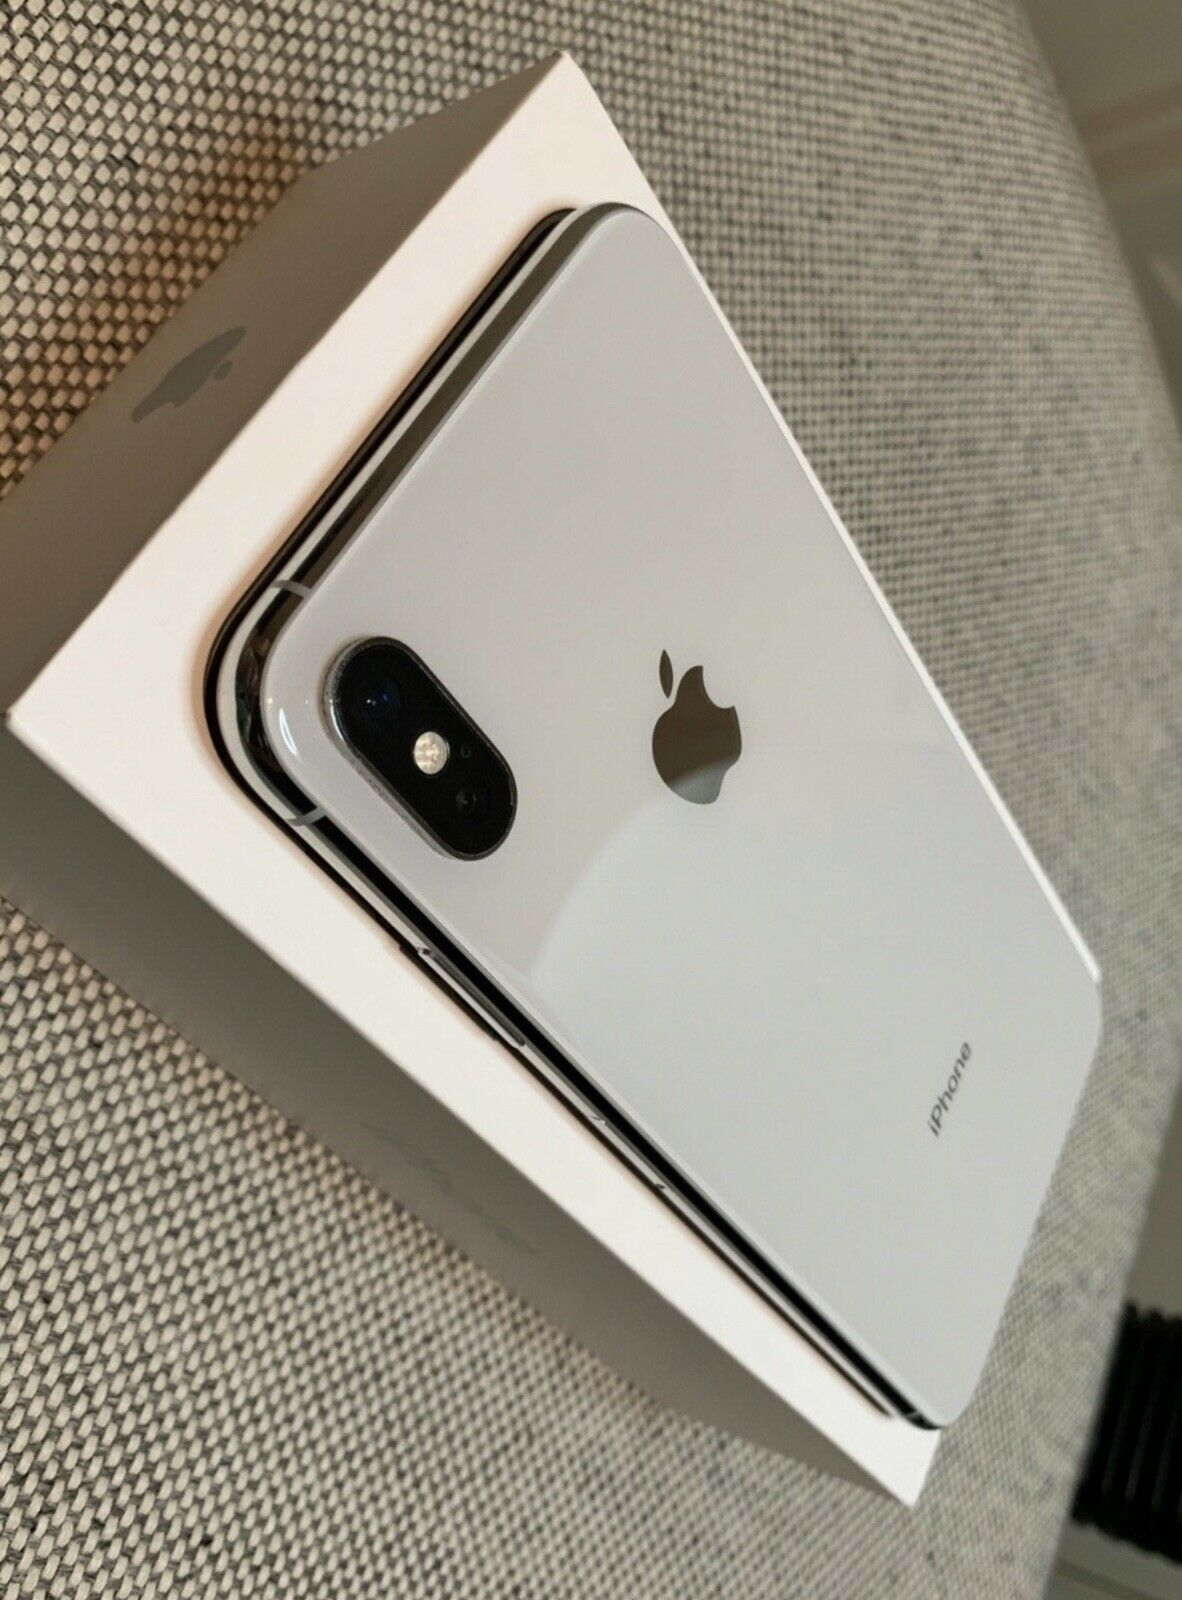 iPhone xs max 512gb available